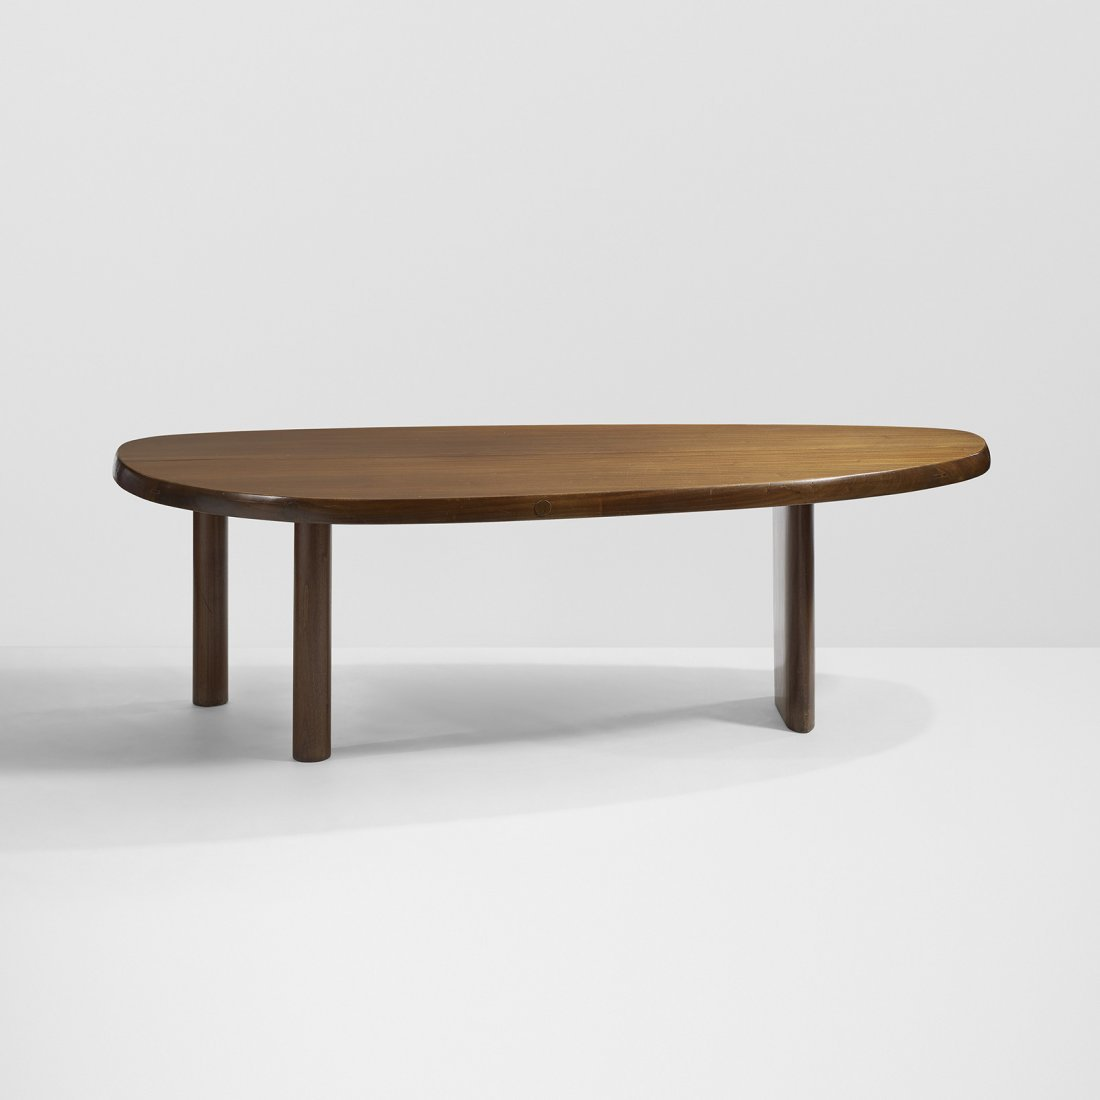 Charlotte Perriand Free-form dining table